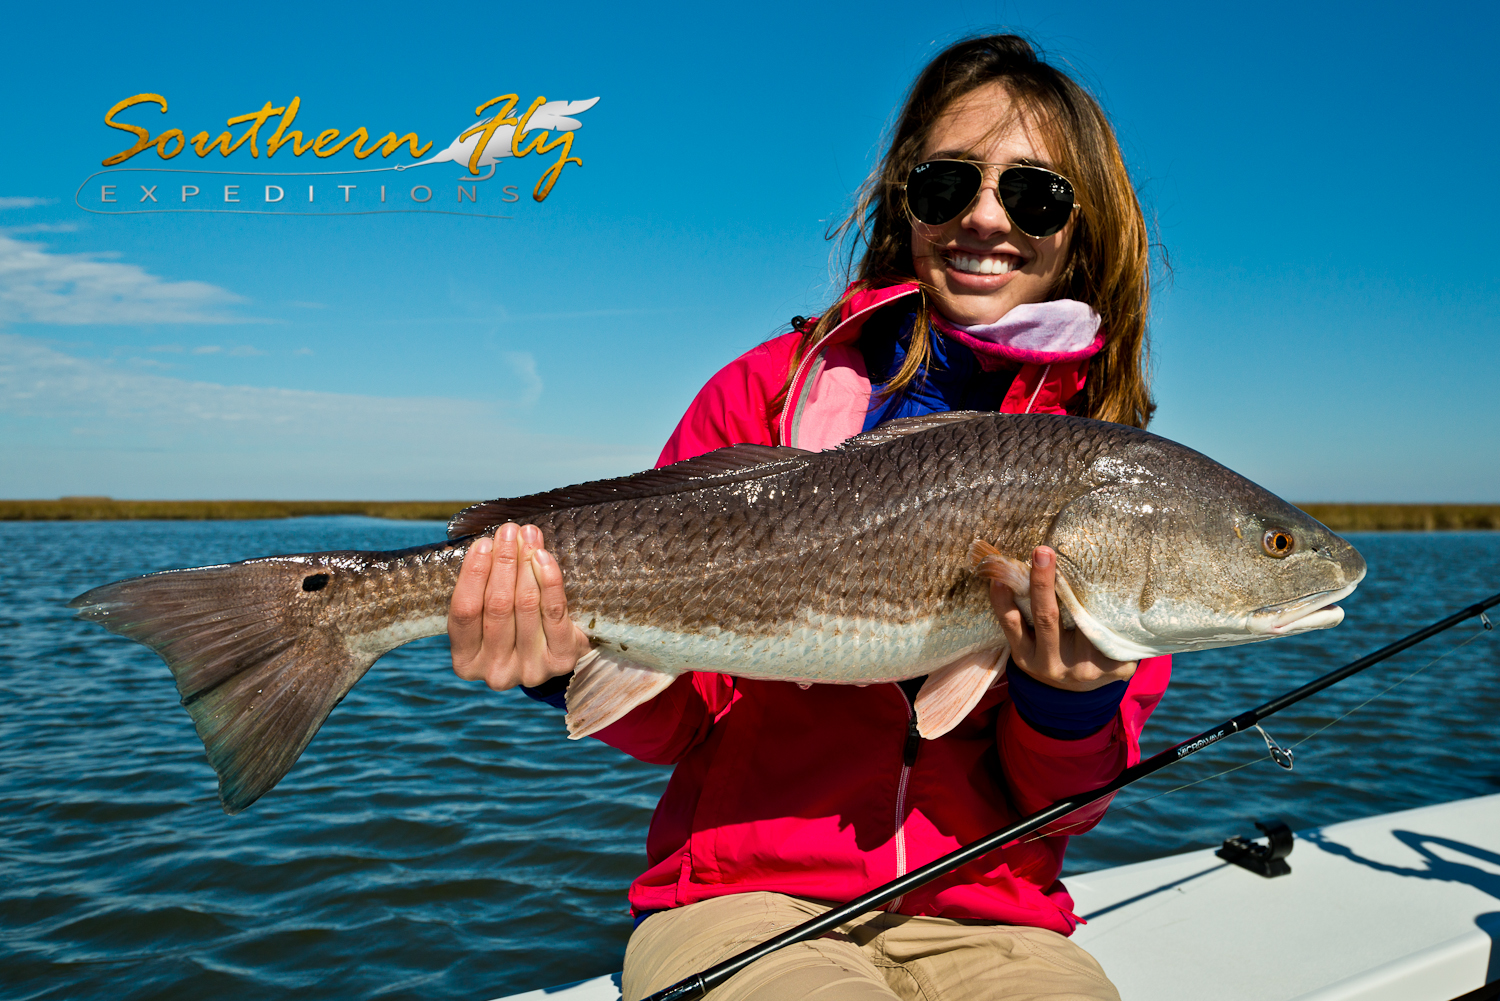 Fly Fishing Photos January 2015 with Southern Fly Expeditions